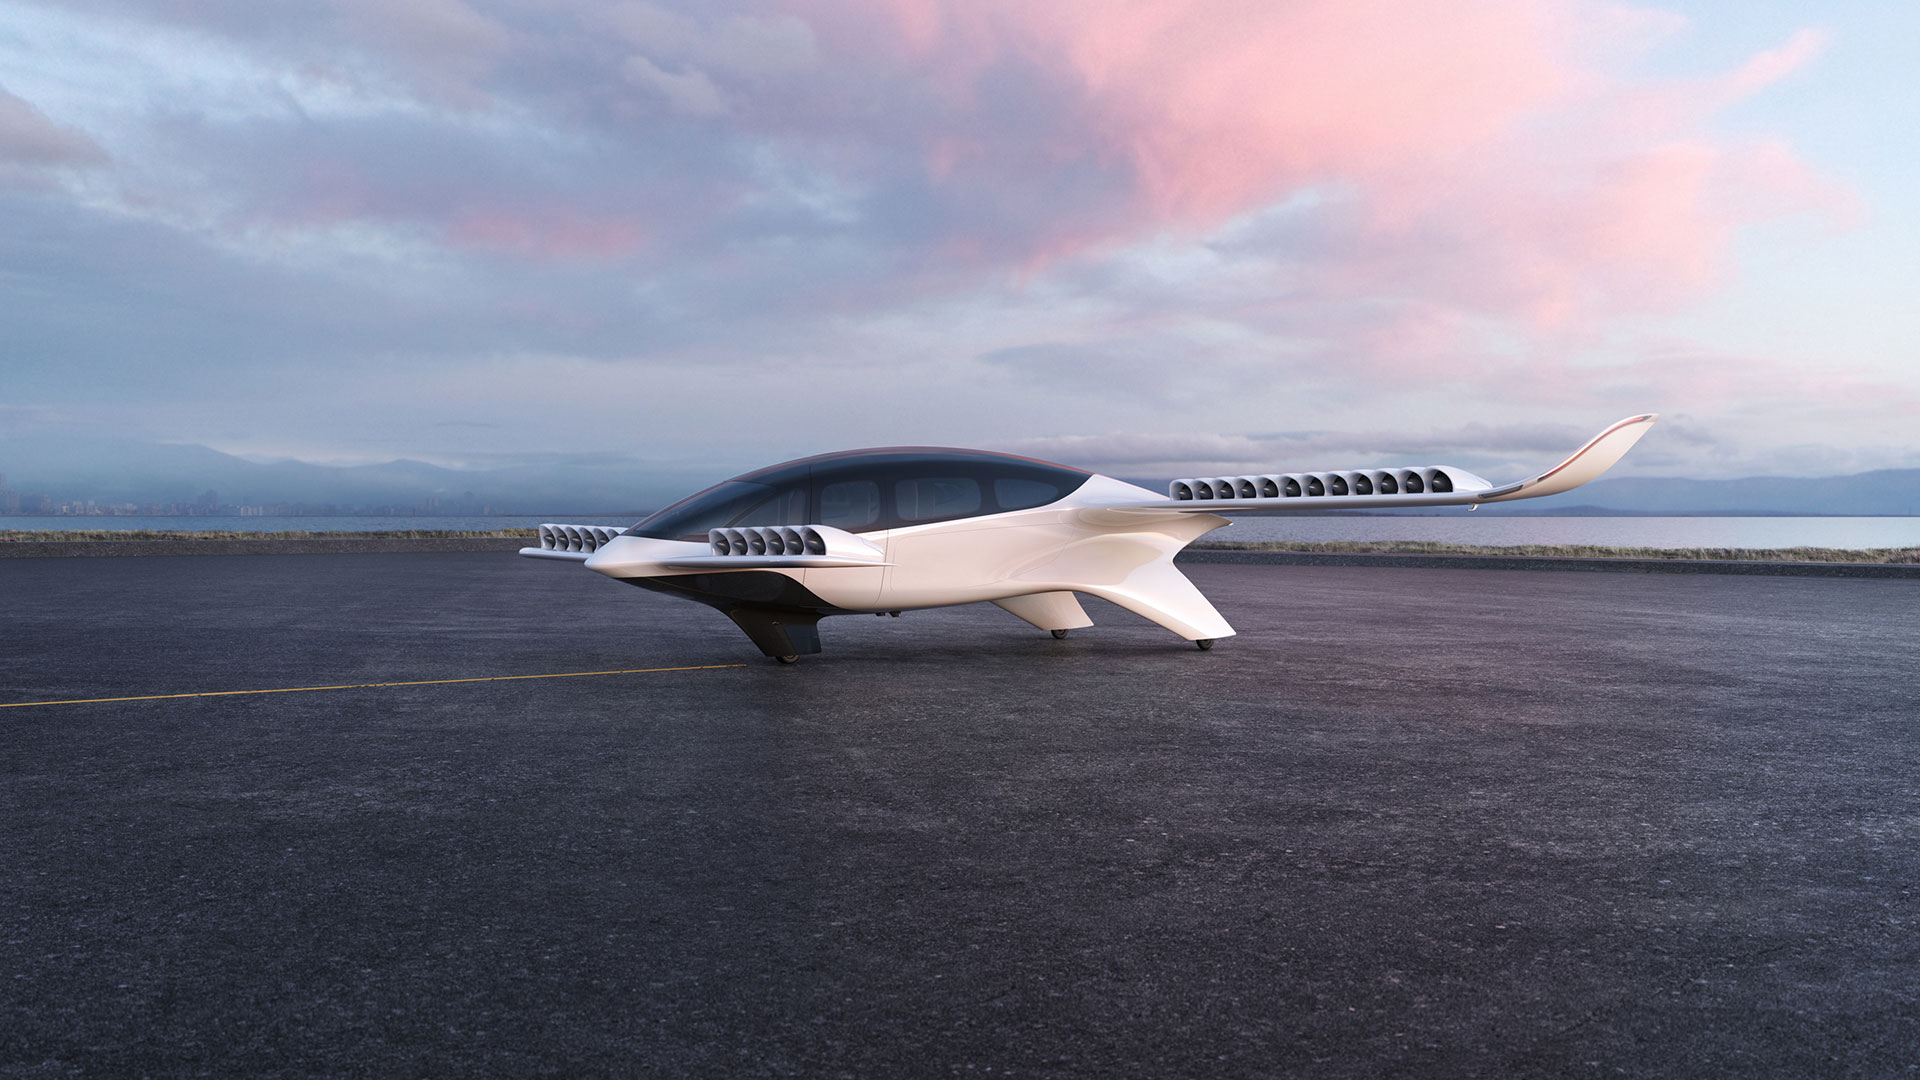 Lilium plans to take commercial services to the skies in 2024